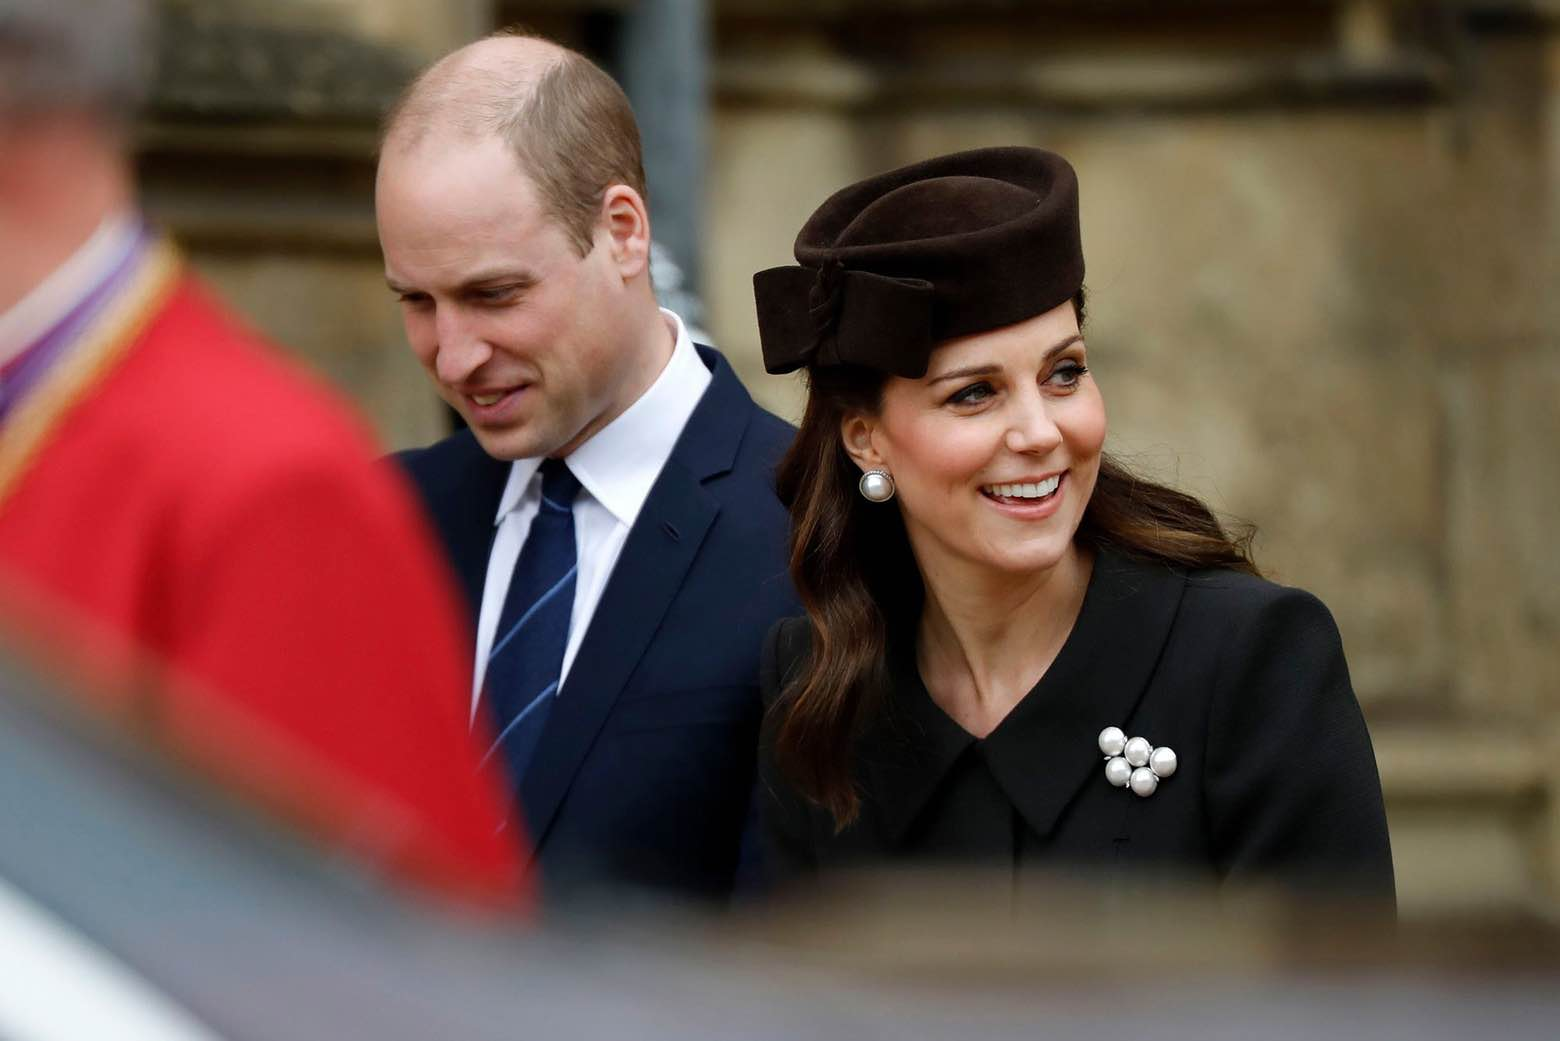 Prince William And Kate Broke Royal Protocol, Report